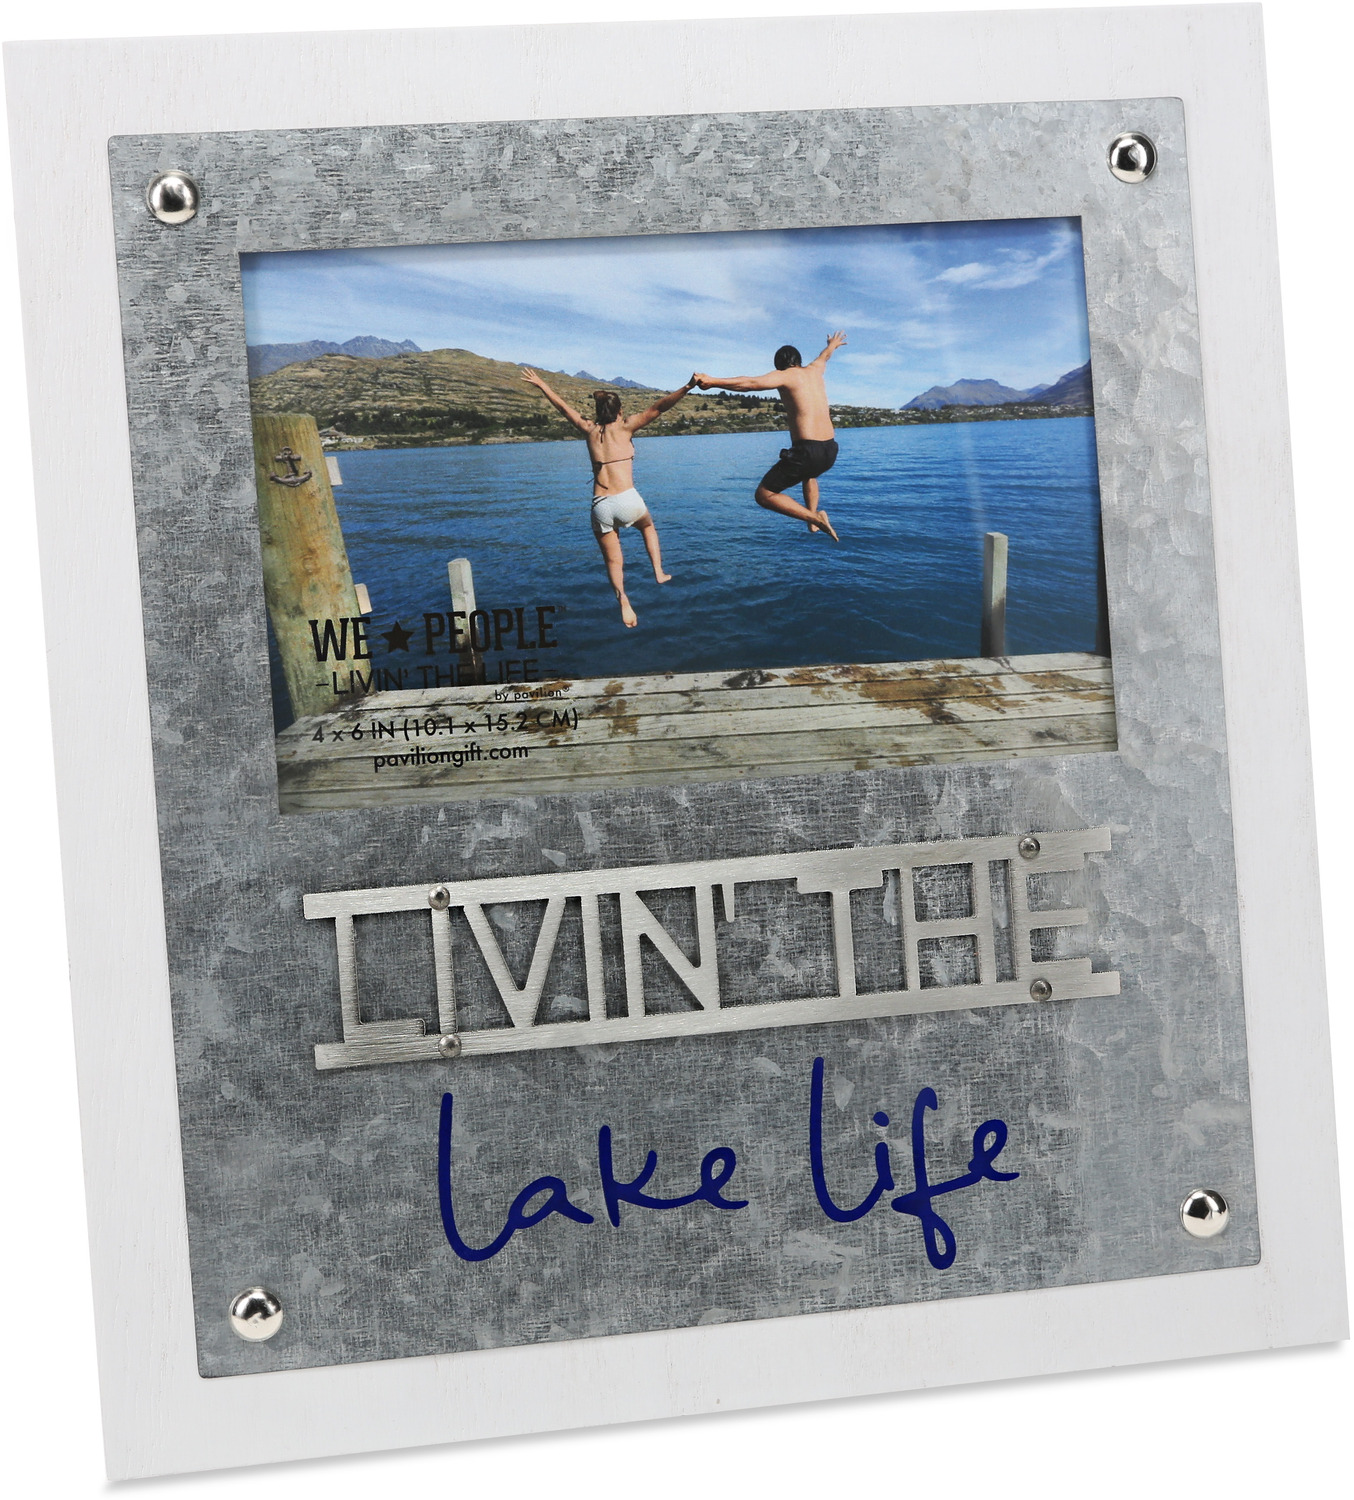 "Lake Life  by We People - Lake Life  - 8.25"" x 9"" Frame (Holds 4"" x 6"" Photo)"